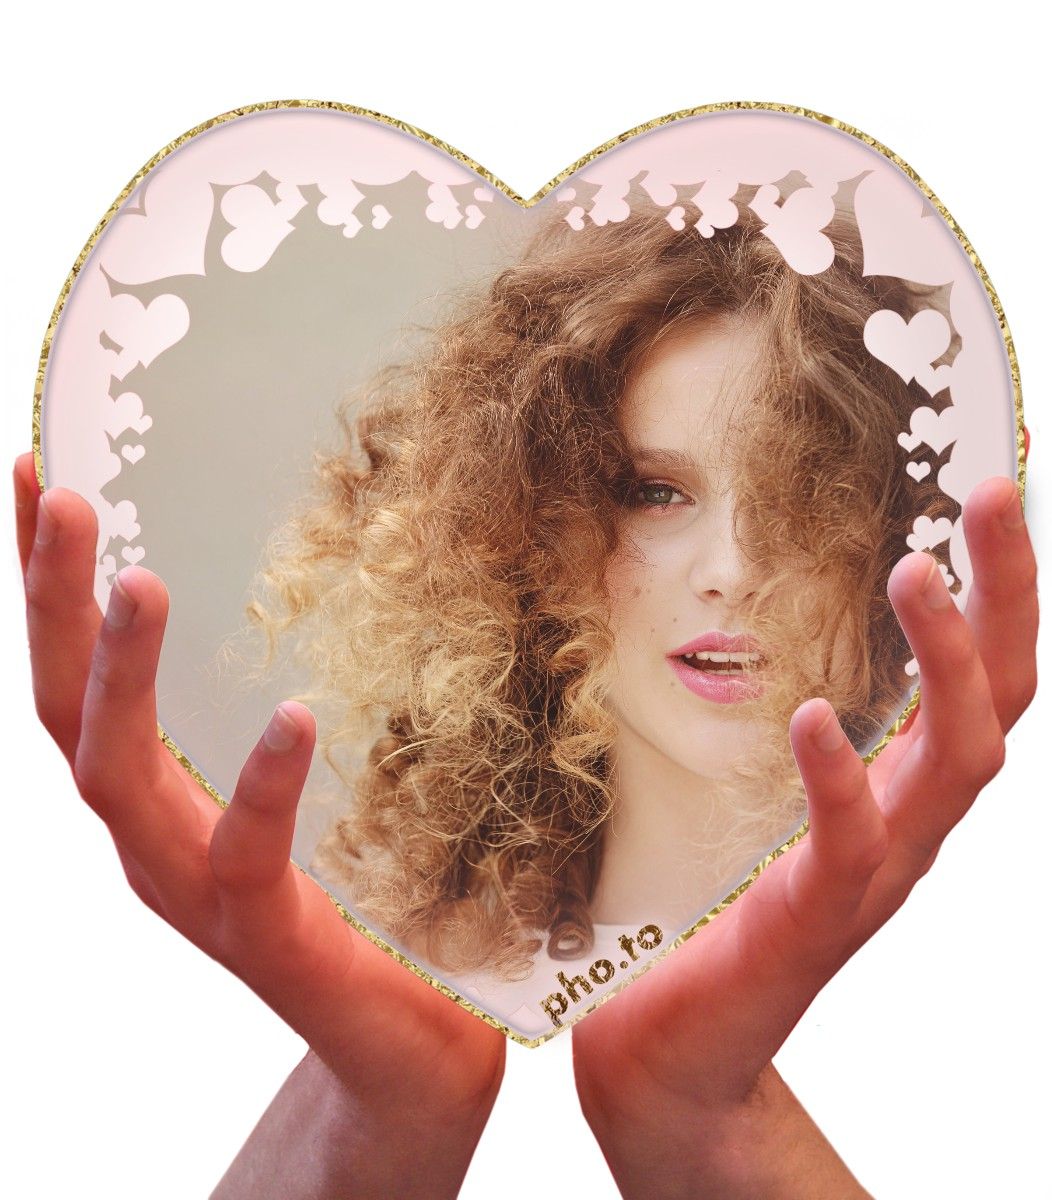 A lovely ecard for a girlfriend: her photo in this sweet heart frame.